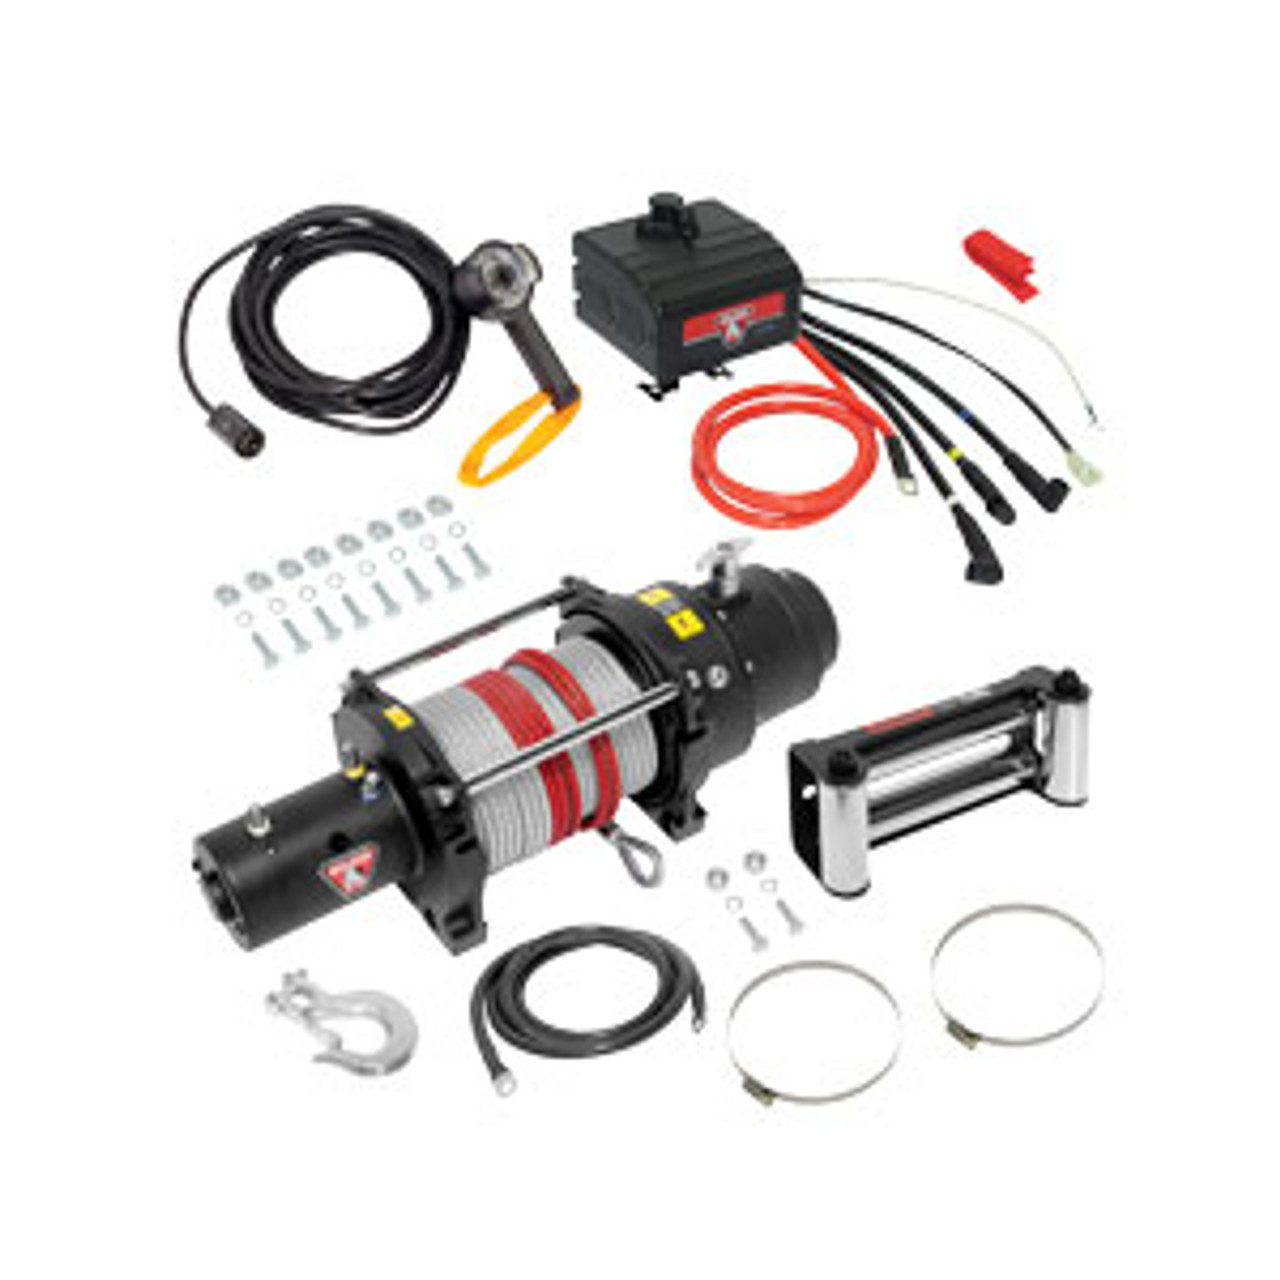 500426 --- BULLDOG DC Electric  Heavy Duty Winch, 12000 lb Capacity